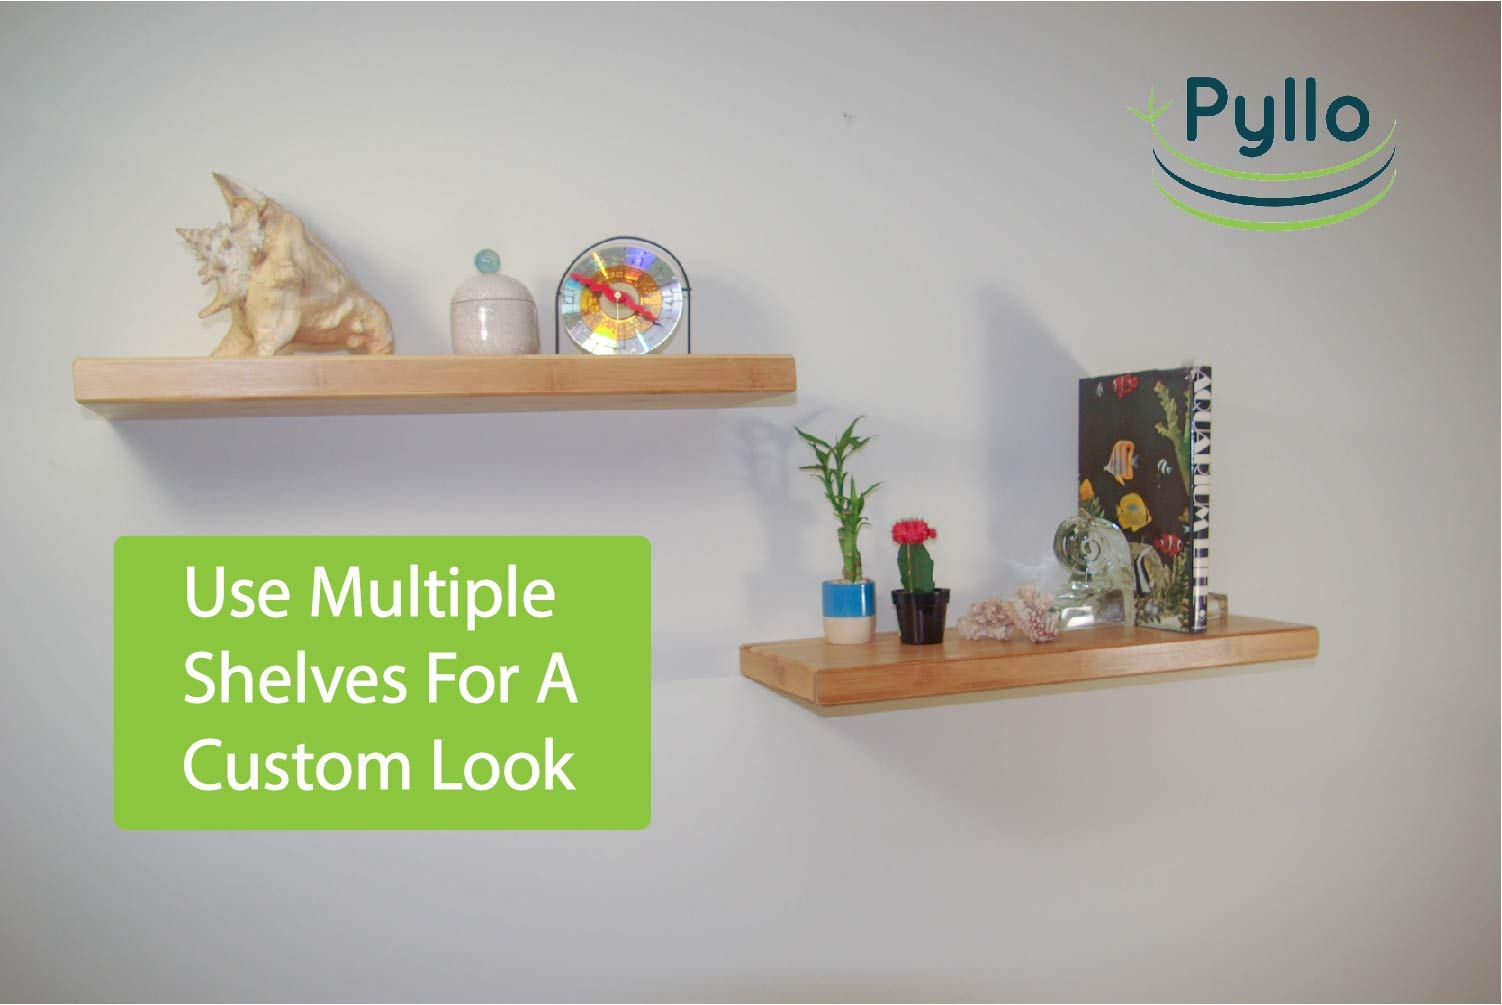 "Pyllo Bamboo Floating Shelf - Floating Wall Shelves with Hidden Bracket - Made from 100% Bamboo - 23 5/8"" X 9 1/4"" X 1 1/2"" - Easy Installation - PREMIUM QUALITY ECO-FRIENDLY BAMBOO SHELF - NO MDF (Particle Board) : Perfect For Office, Kitchen, Bedroom, Bathroom, Nursery, or Anywhere Around Your Home. EXTRA WIDE 9 1/2 Inches , Makes A Great Display Shelf For Books, Pictures, or Collectibles. The Durable Natural Carbonized Finish is Easy to Clean and Will Last For Years. EASILY HOLDS UP TO 25 POUNDS - With Our Wall Mounted Shelves, Only One Single Hidden Bracket Is Needed, Which Makes For EASY INSTALLATION! No Exposed Shelf Brackets To Get In Your Way. Hidden Mounting Bracket Gives a Floating Shelf Appearance... EASY TO FOLLOW INSTRUCTIONS, with Drywall Anchors, That Require NO DRILLING and Screws Included. BAMBOO IS NATURALLY ANTIBACTERIAL, ANTIMICROBIAL and WATER RESISTANT, which makes them Perfect for Bathrooms and Nurseries. These Floating Wall Shelves are not only Beautiful, but Durable as well. Bamboo will hold up to dings and spills. Our Bamboo comes from sustainable forests. - wall-shelves, living-room-furniture, living-room - 61dHyQwtCnL -"